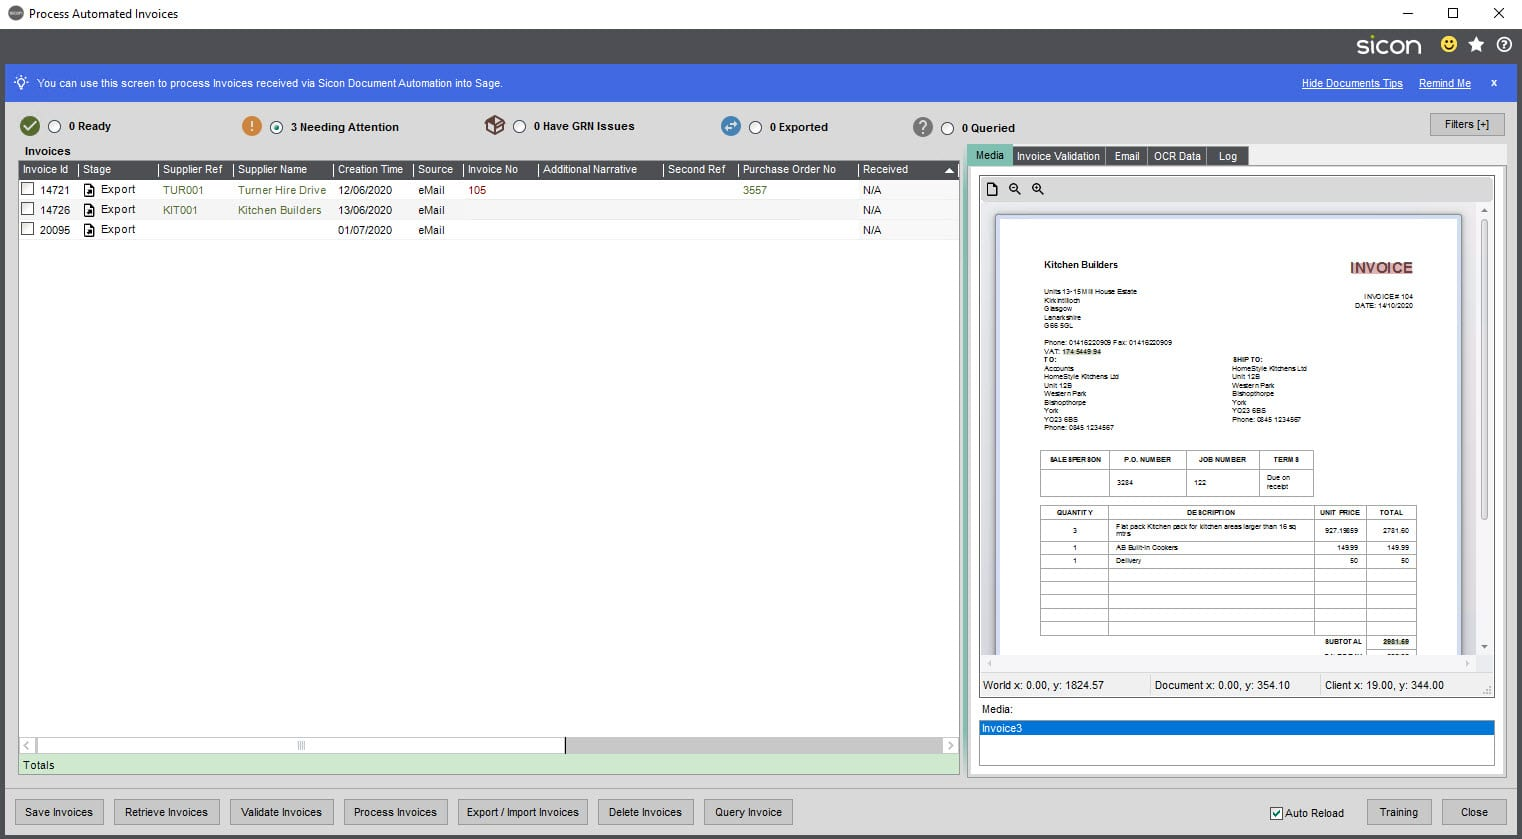 Sicon Documents Help and User Guide - 10.2 Process Automated Invoices